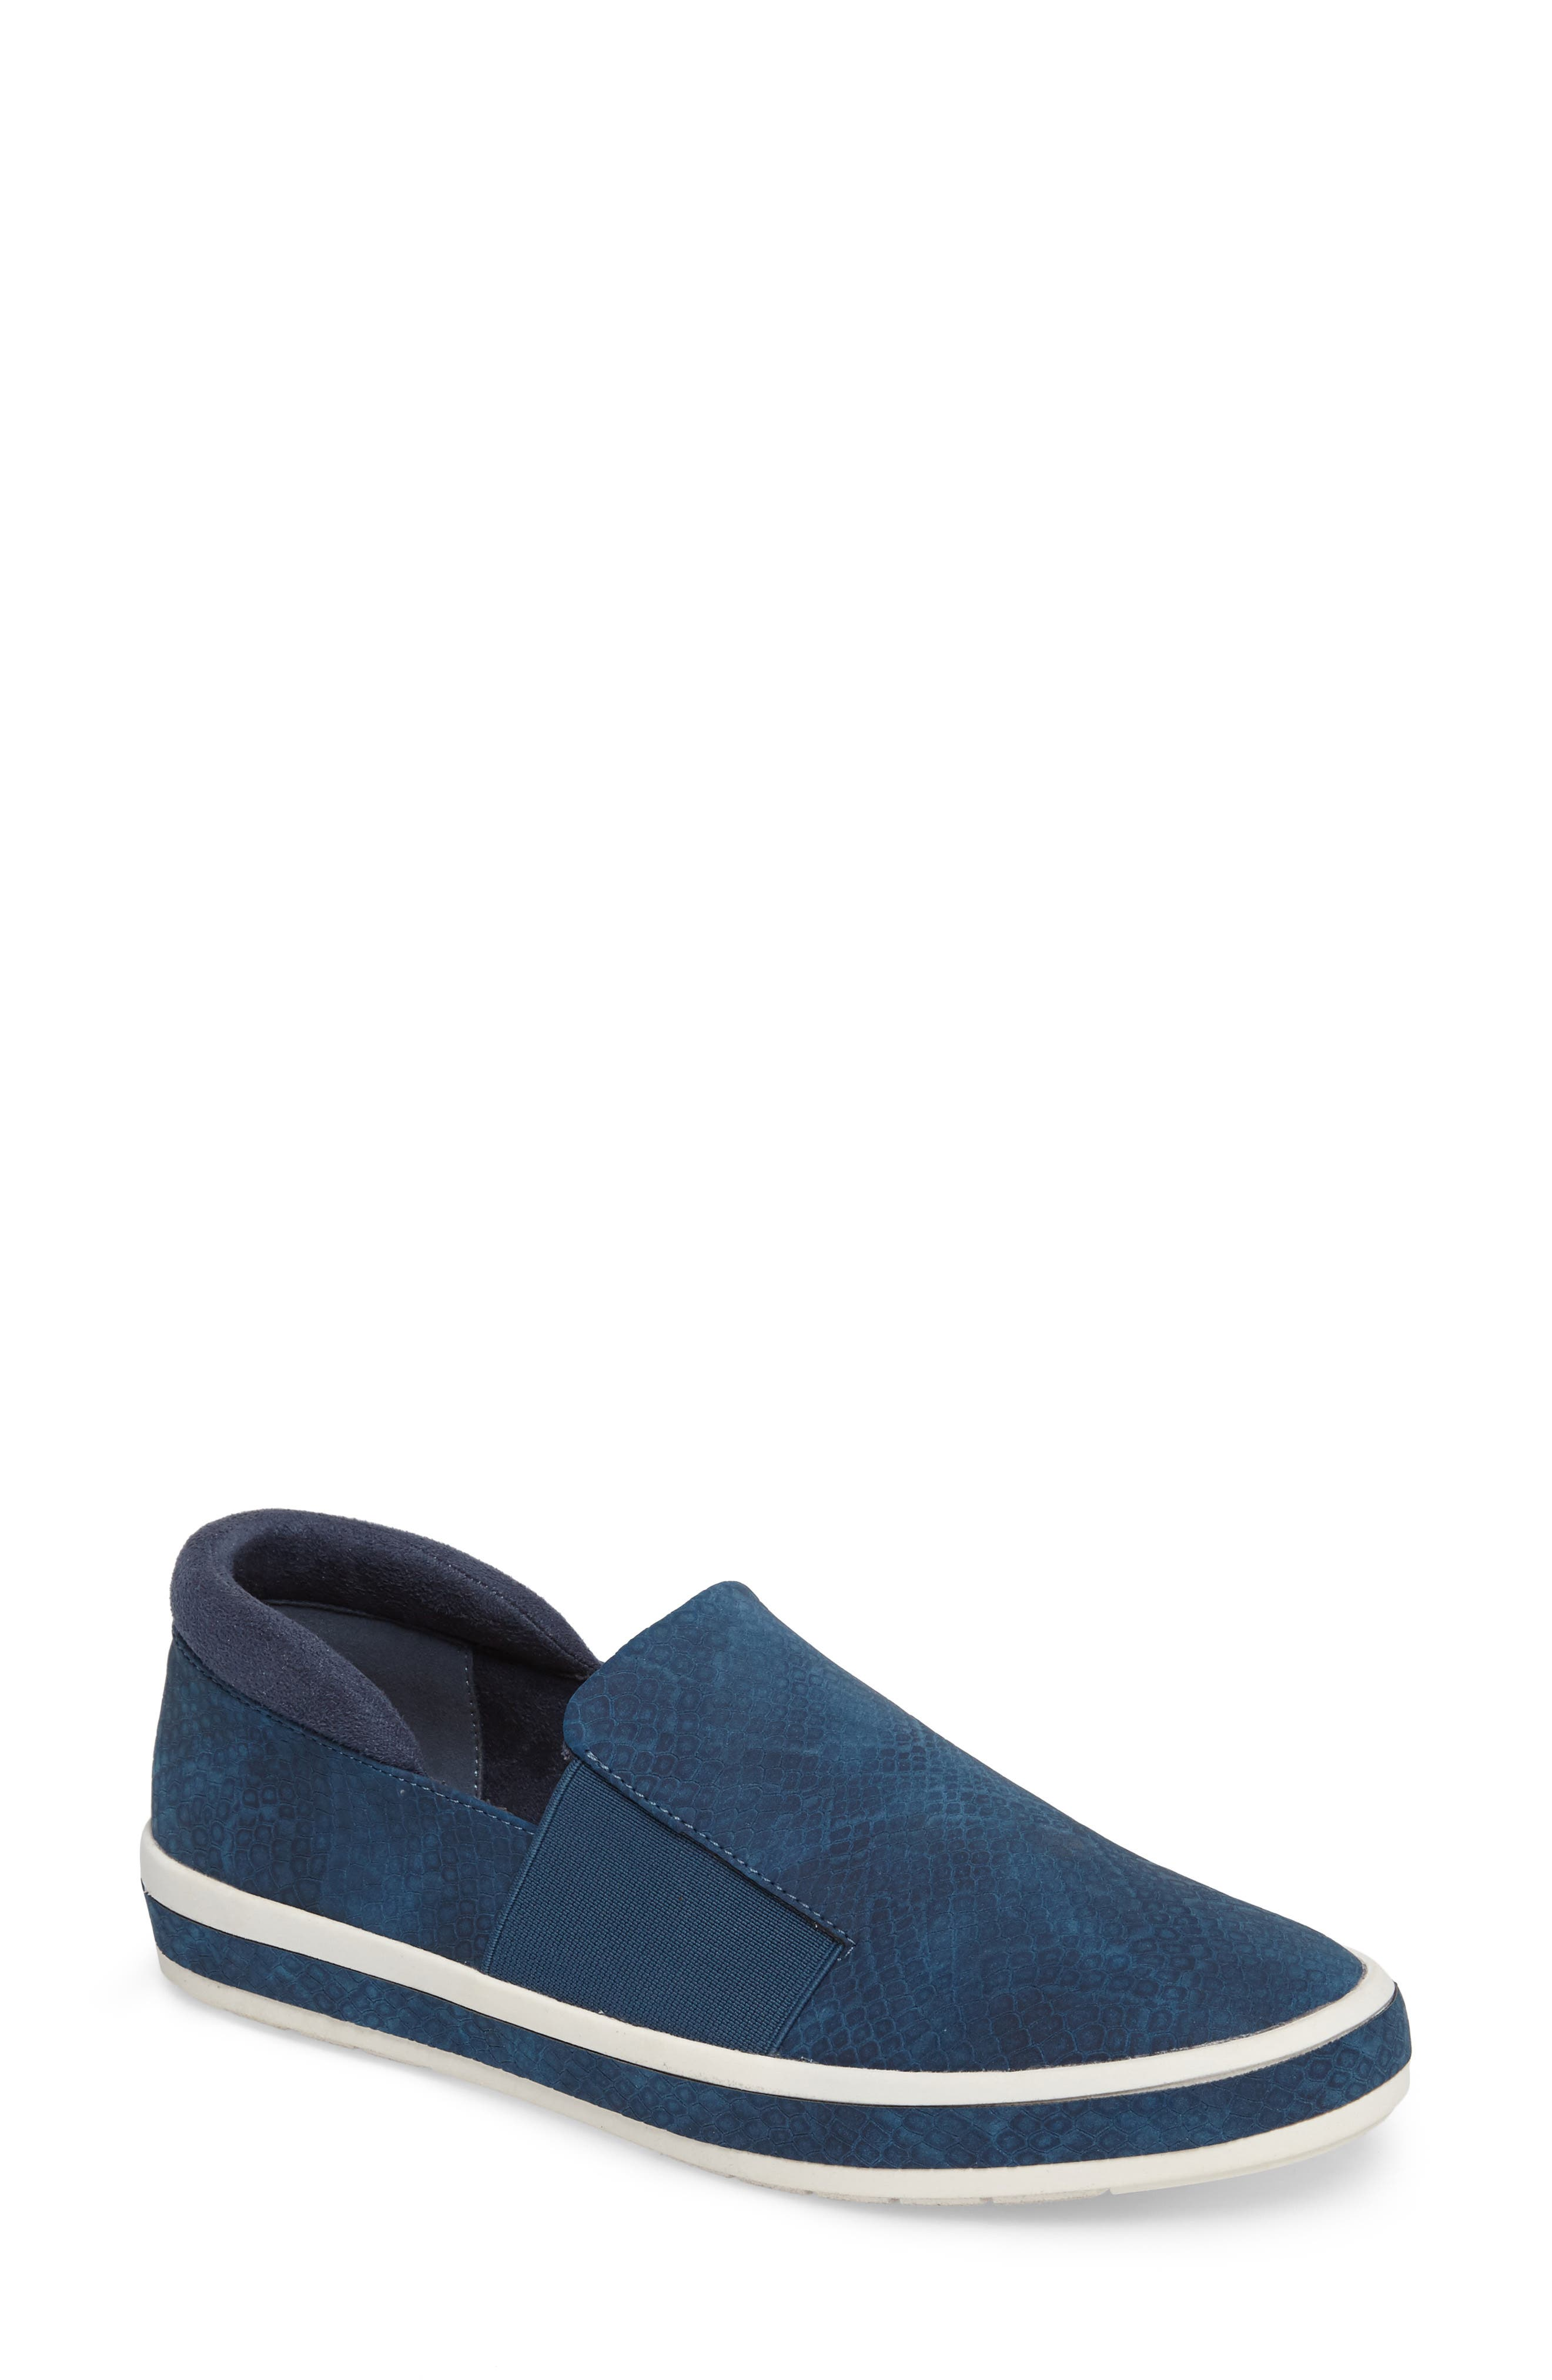 Switch II Slip-On Sneaker,                             Main thumbnail 1, color,                             NAVY PRINTED LEATHER